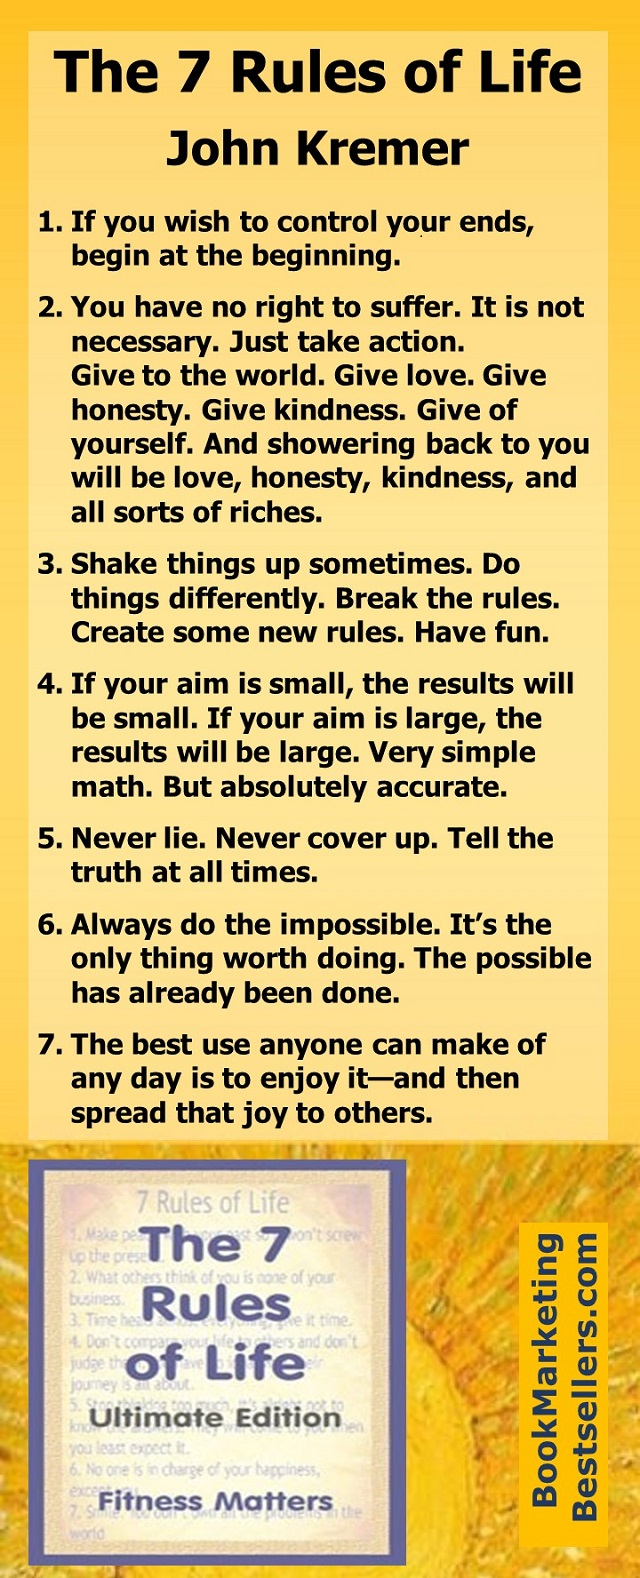 The 7 Rules of Life: Ultimate Edition - These rules apply not only to life in general but also to writing, promoting, and selling your books.